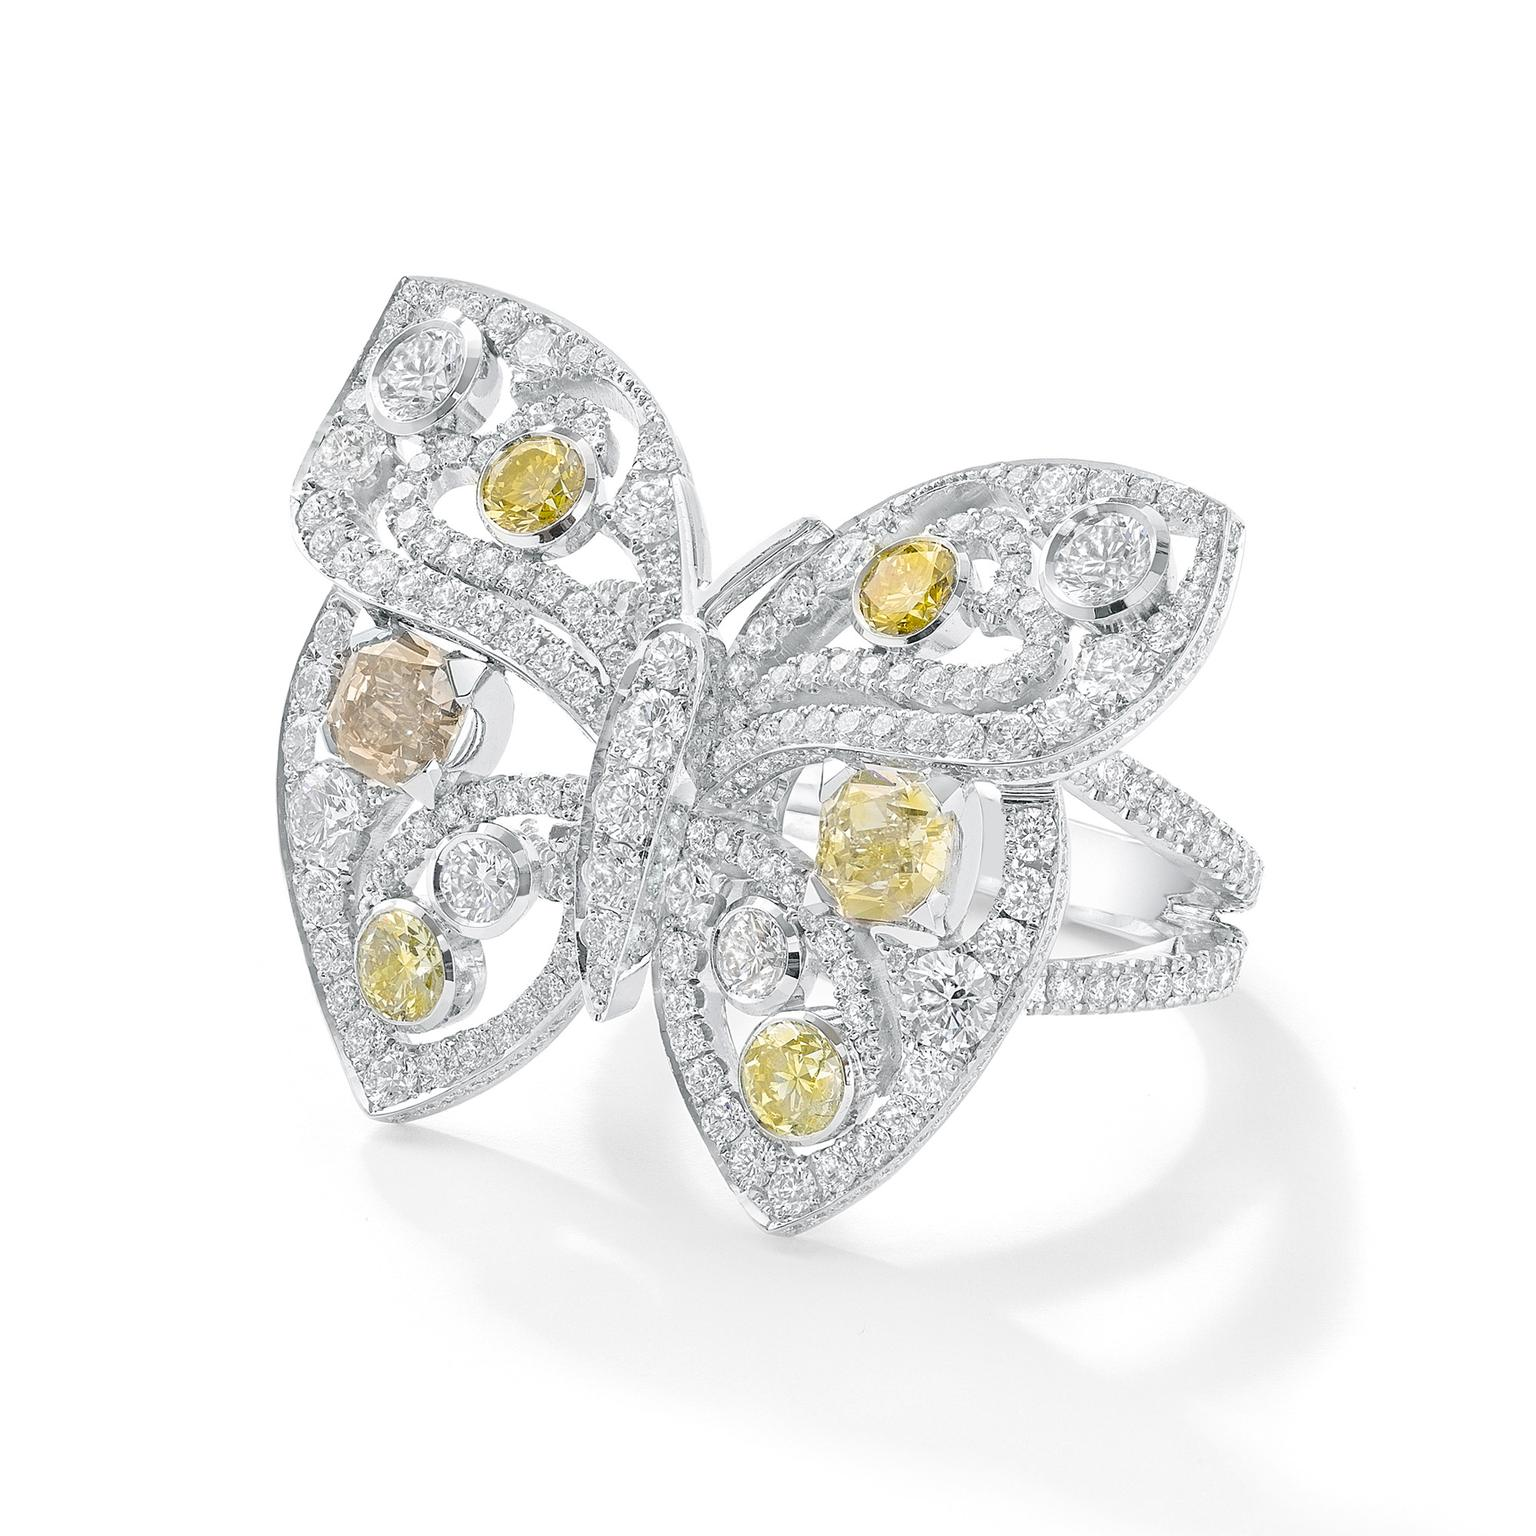 Boodles Finely Coloured Diamonds at Harrods